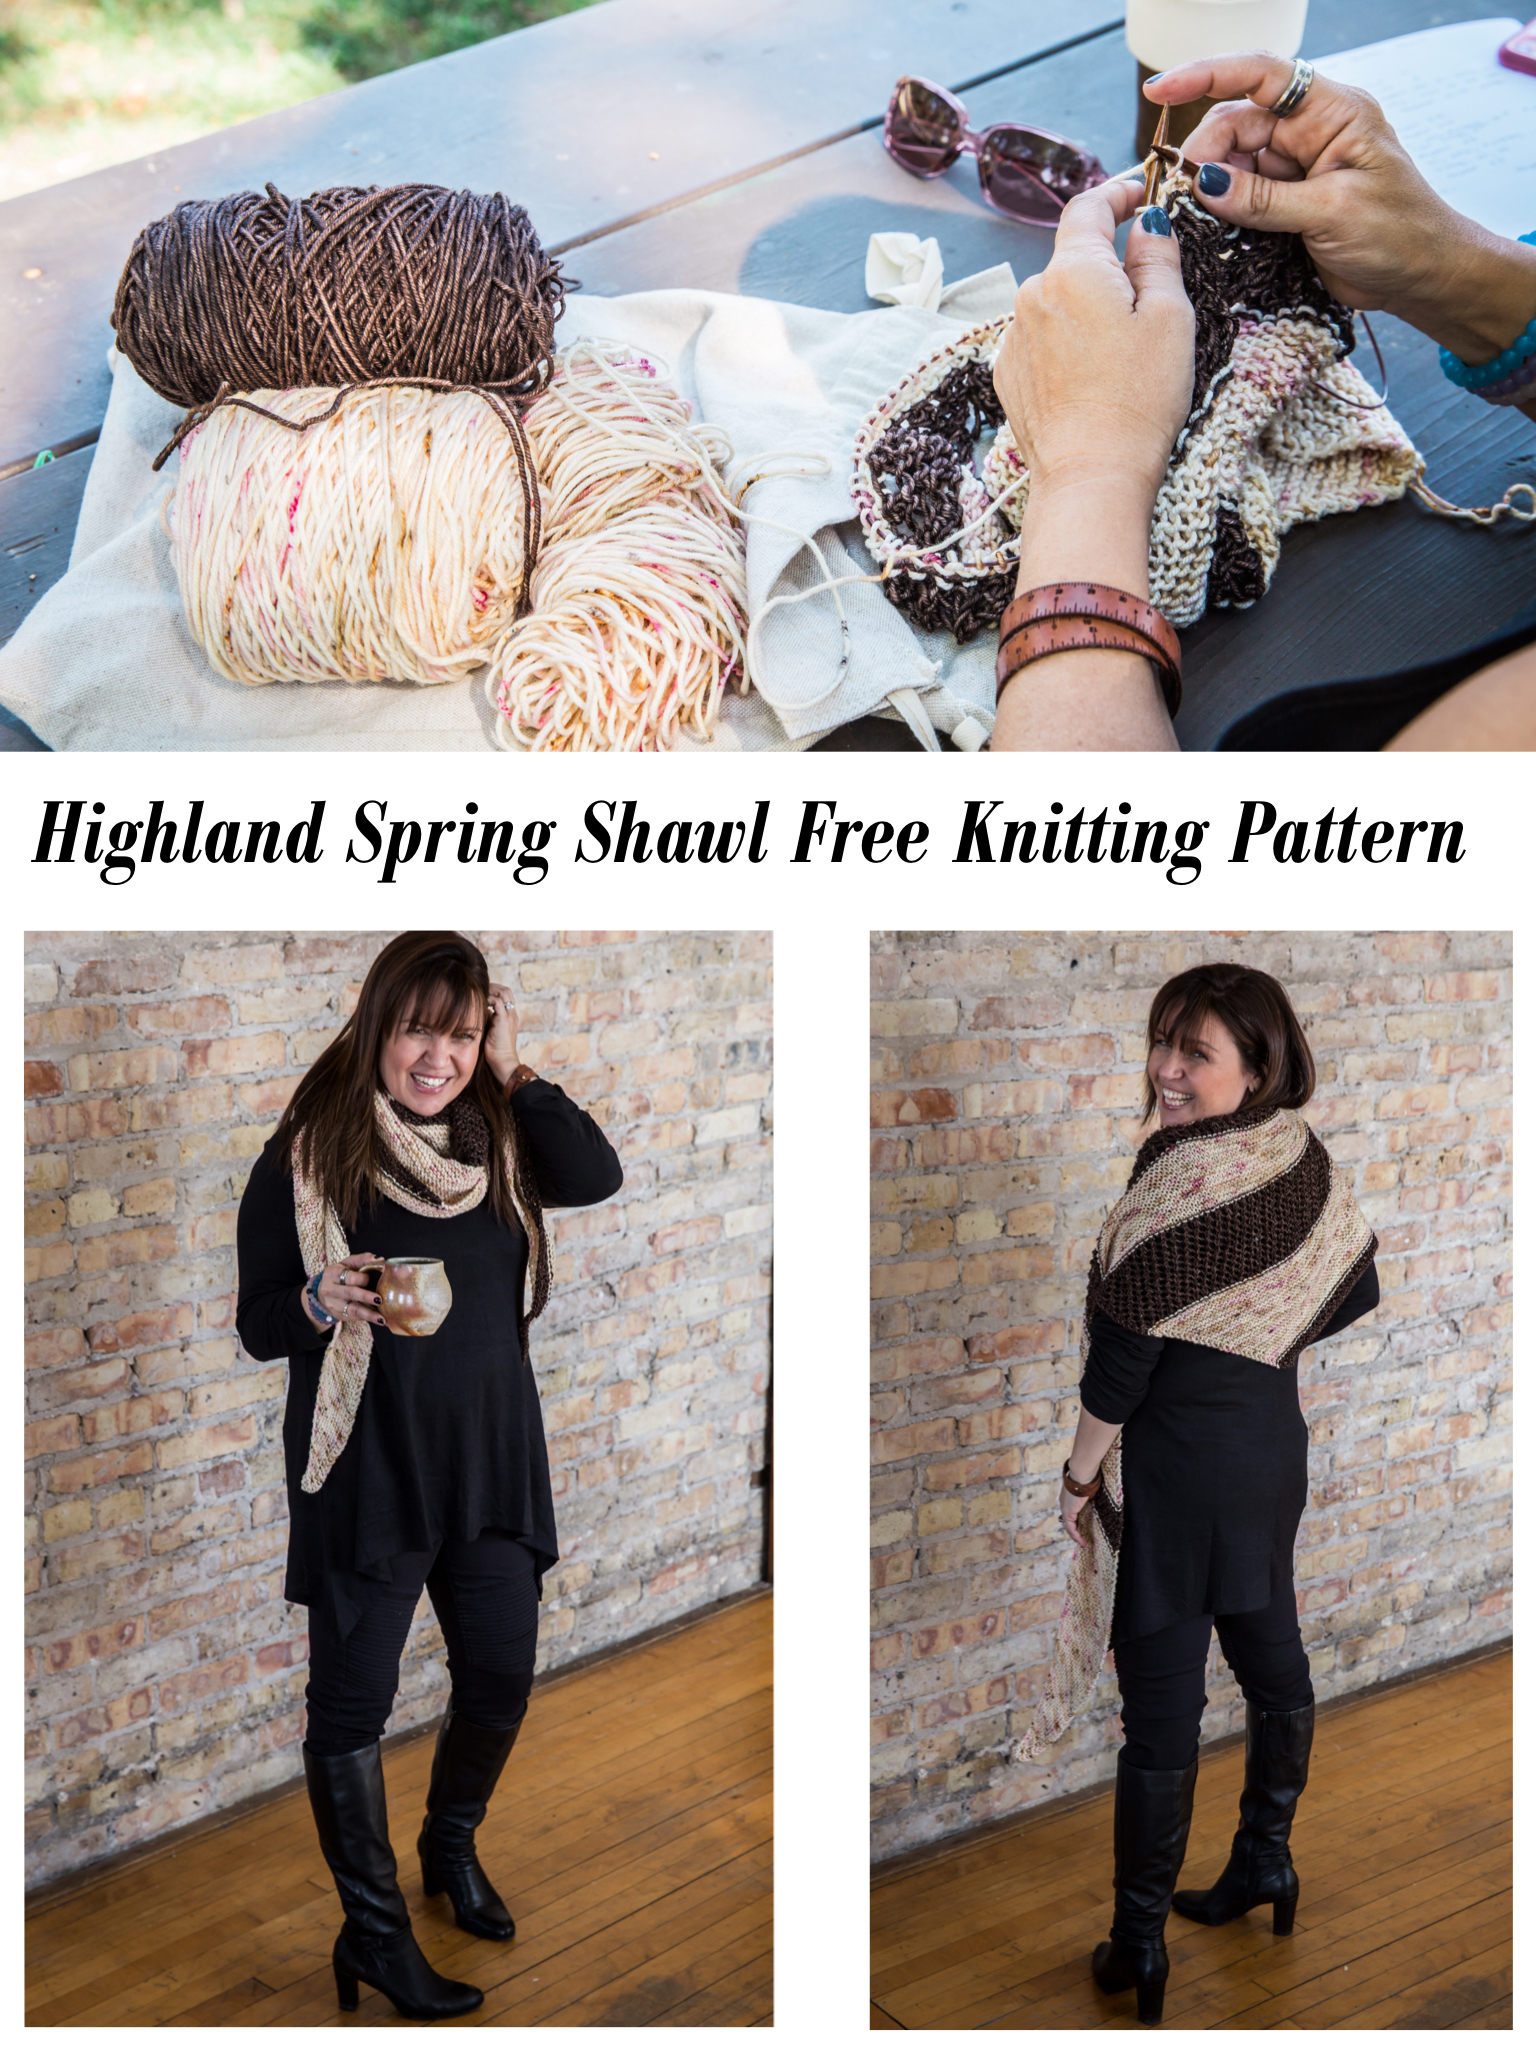 Highland_Knit_Lace_Shawl_Free_Knitting_Pattern_1d.jpg